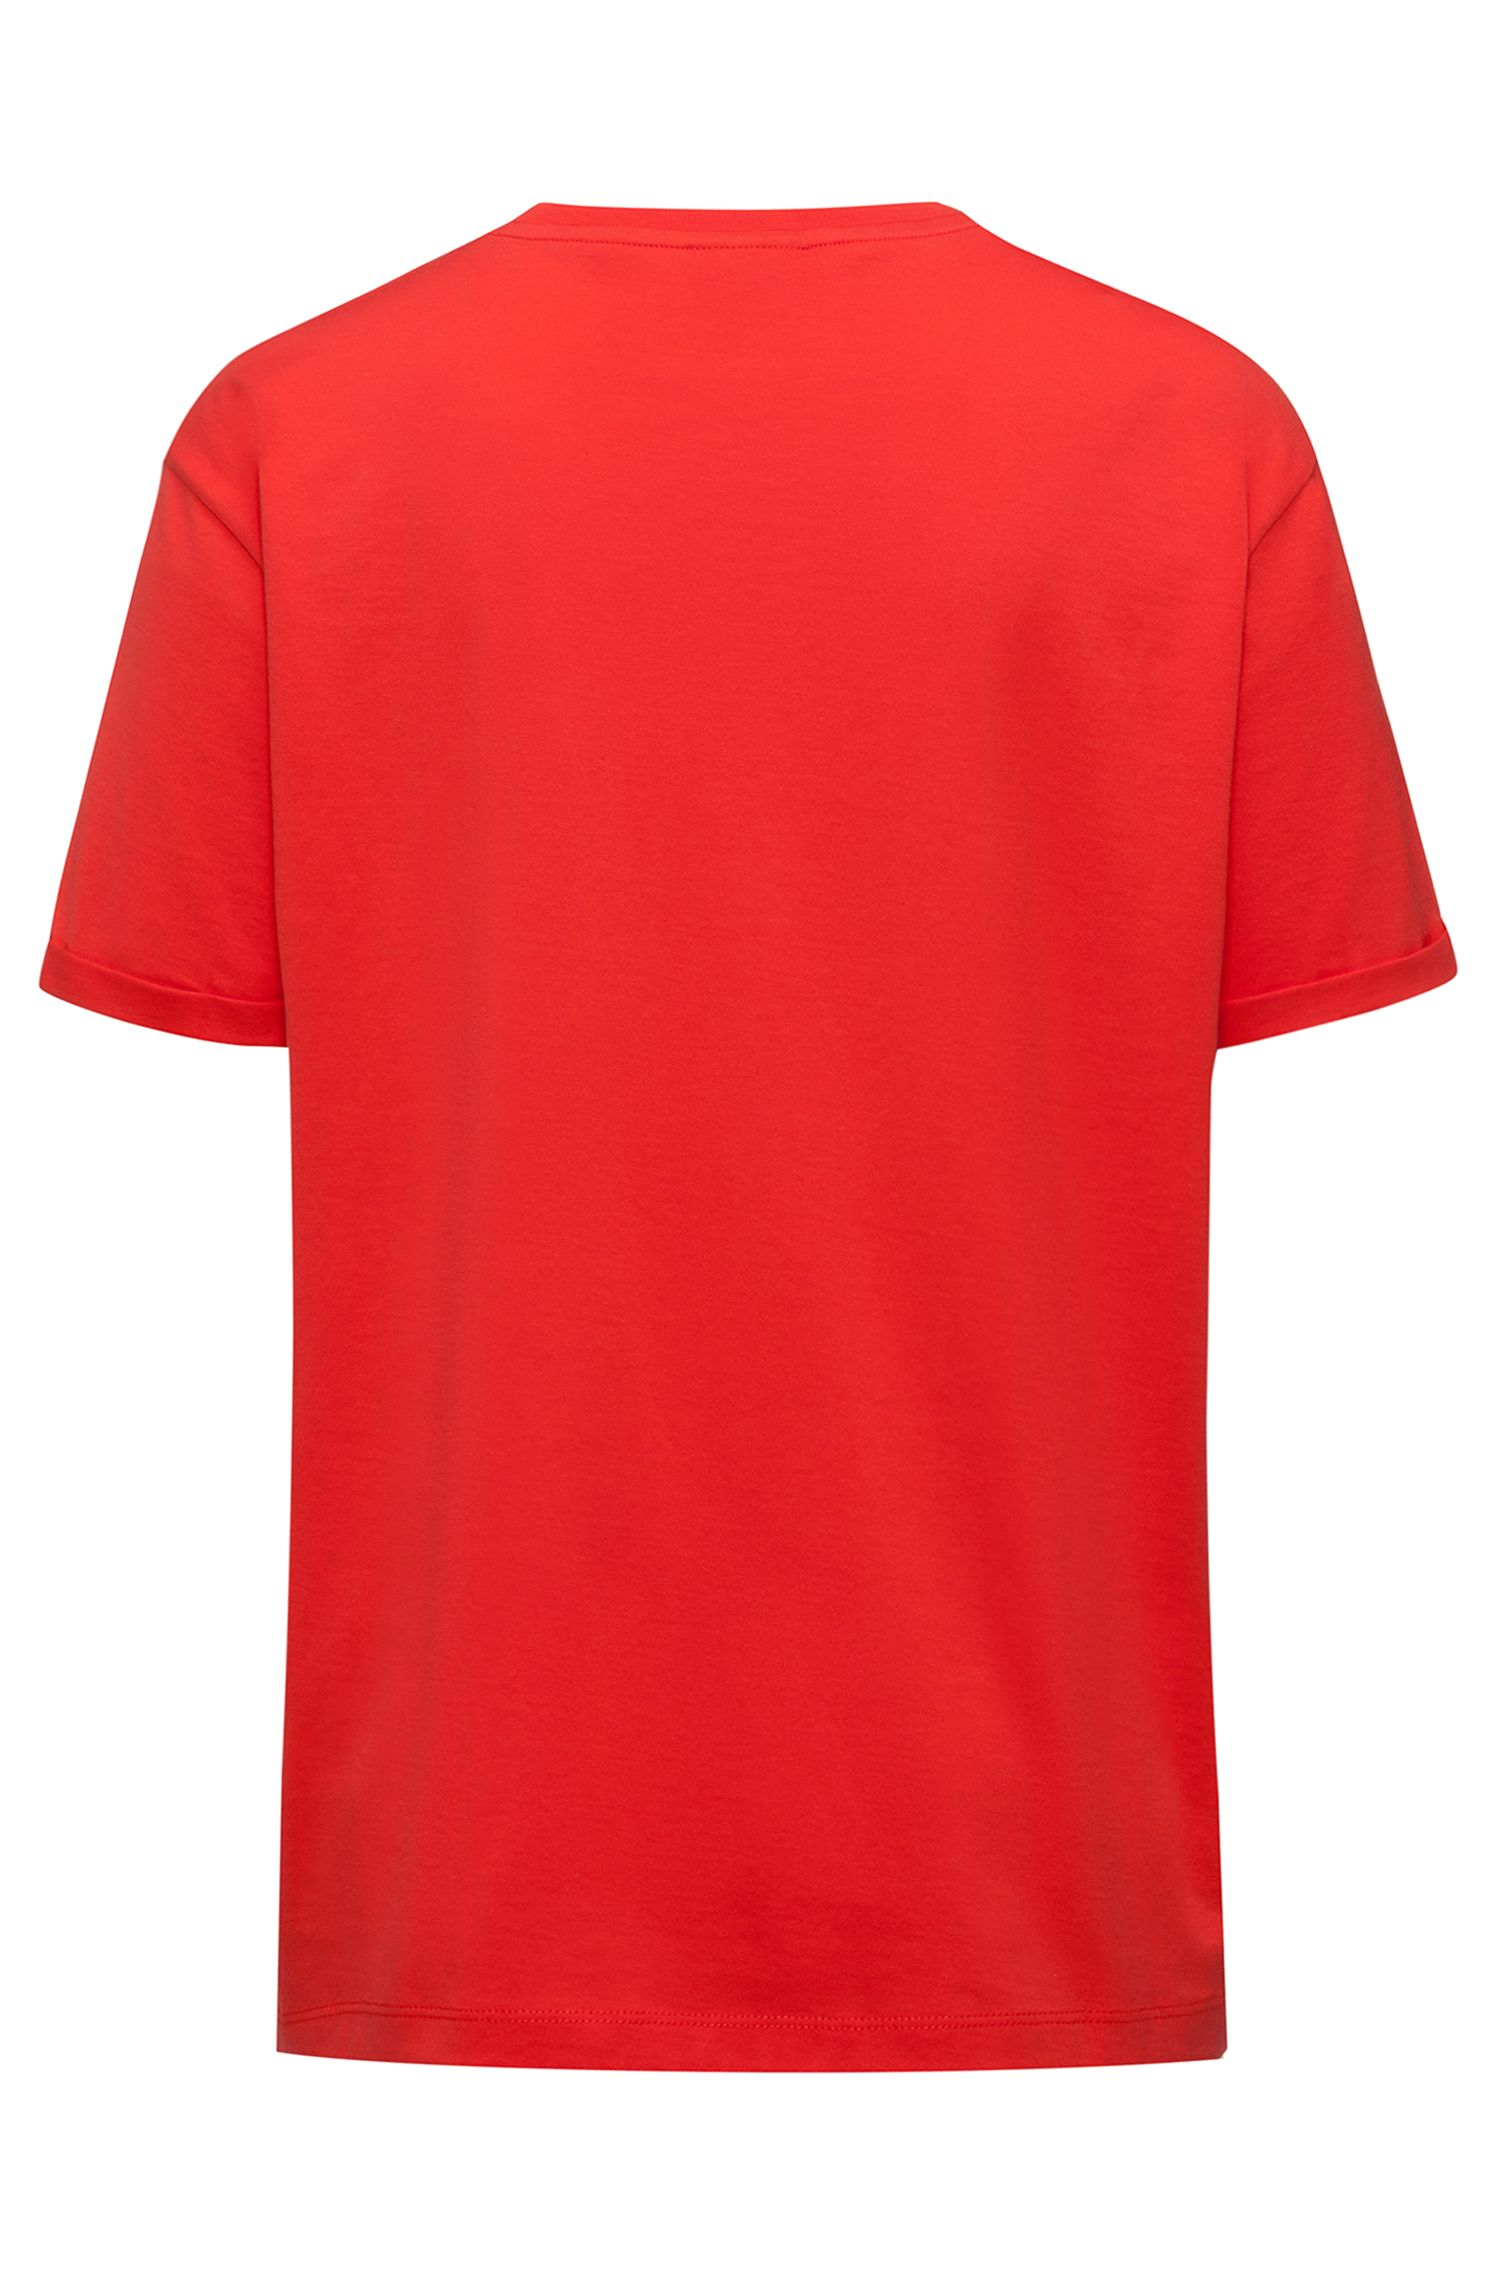 Camiseta relaxed fit de algodón con aplique de ave, Rojo